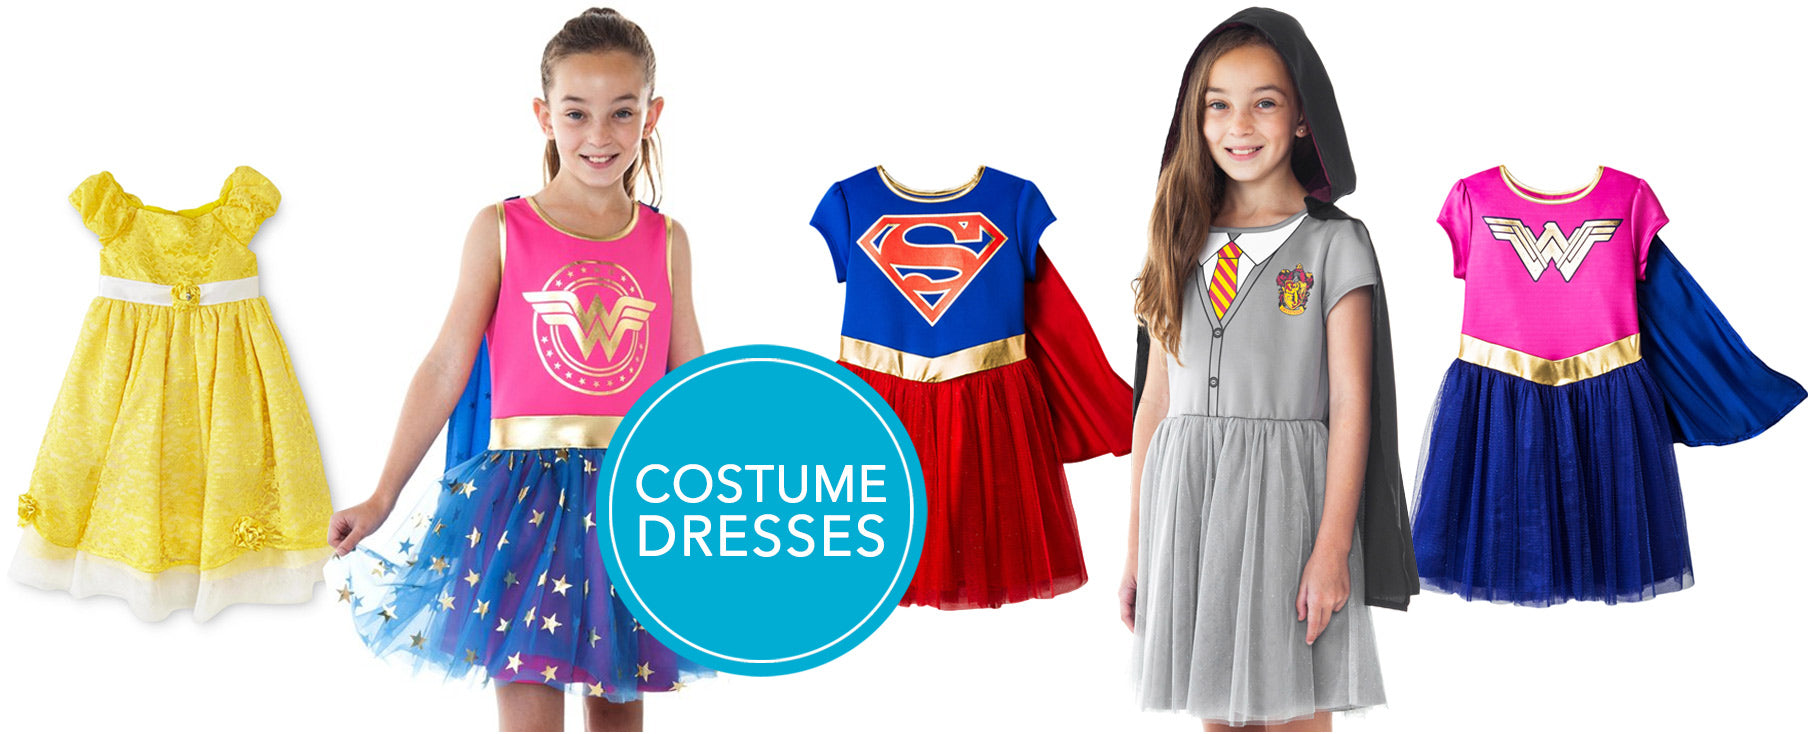 Halloween Costume Dresses for Toddlers and Girls